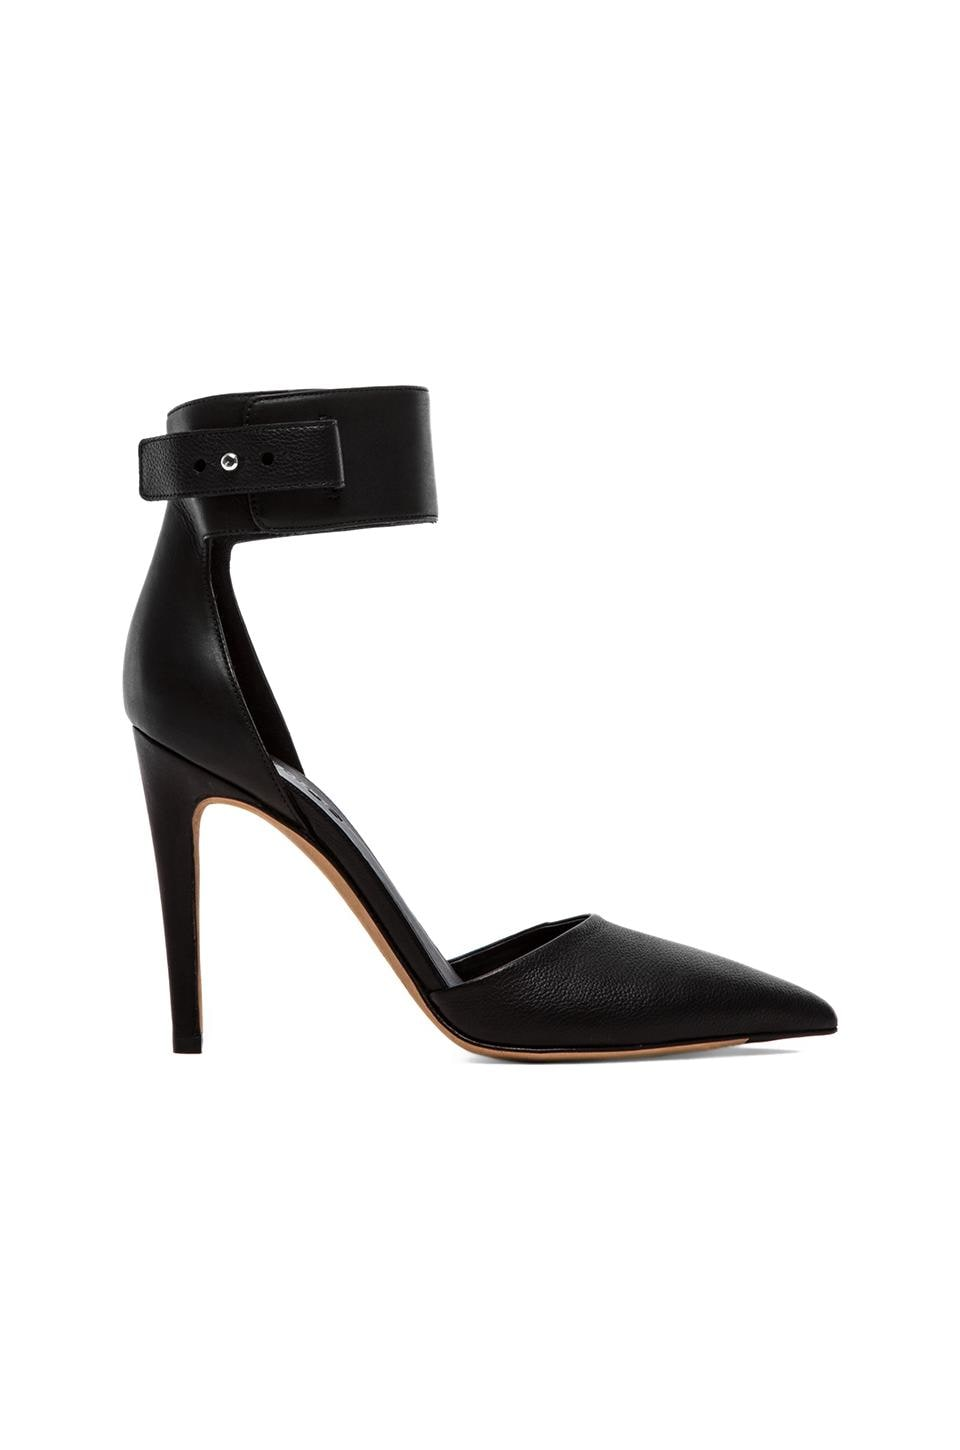 Vince Ada Heel in Black & Black